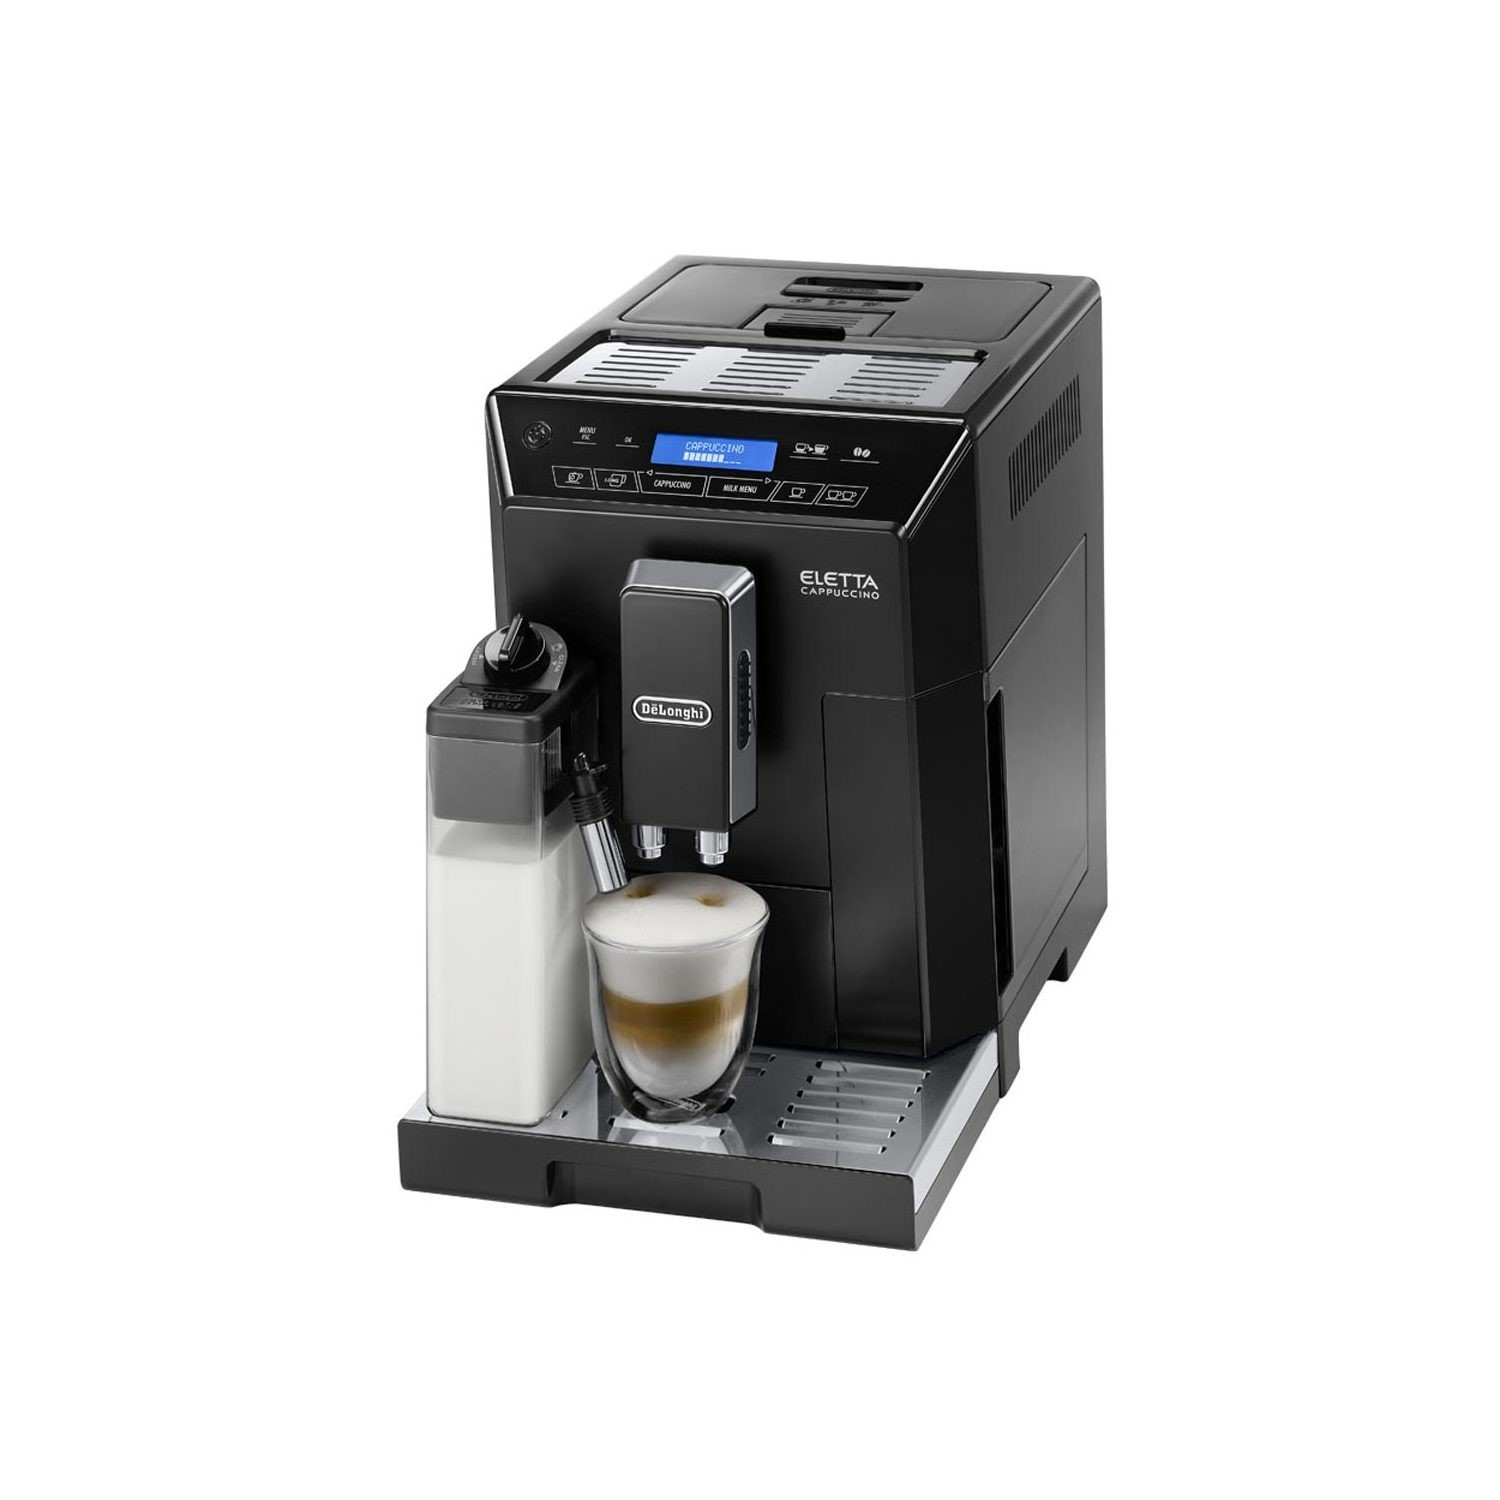 Delonghi Ecam44660b Eletta Bean To Cup Automatic Coffee Machine With Grinder Frother Black